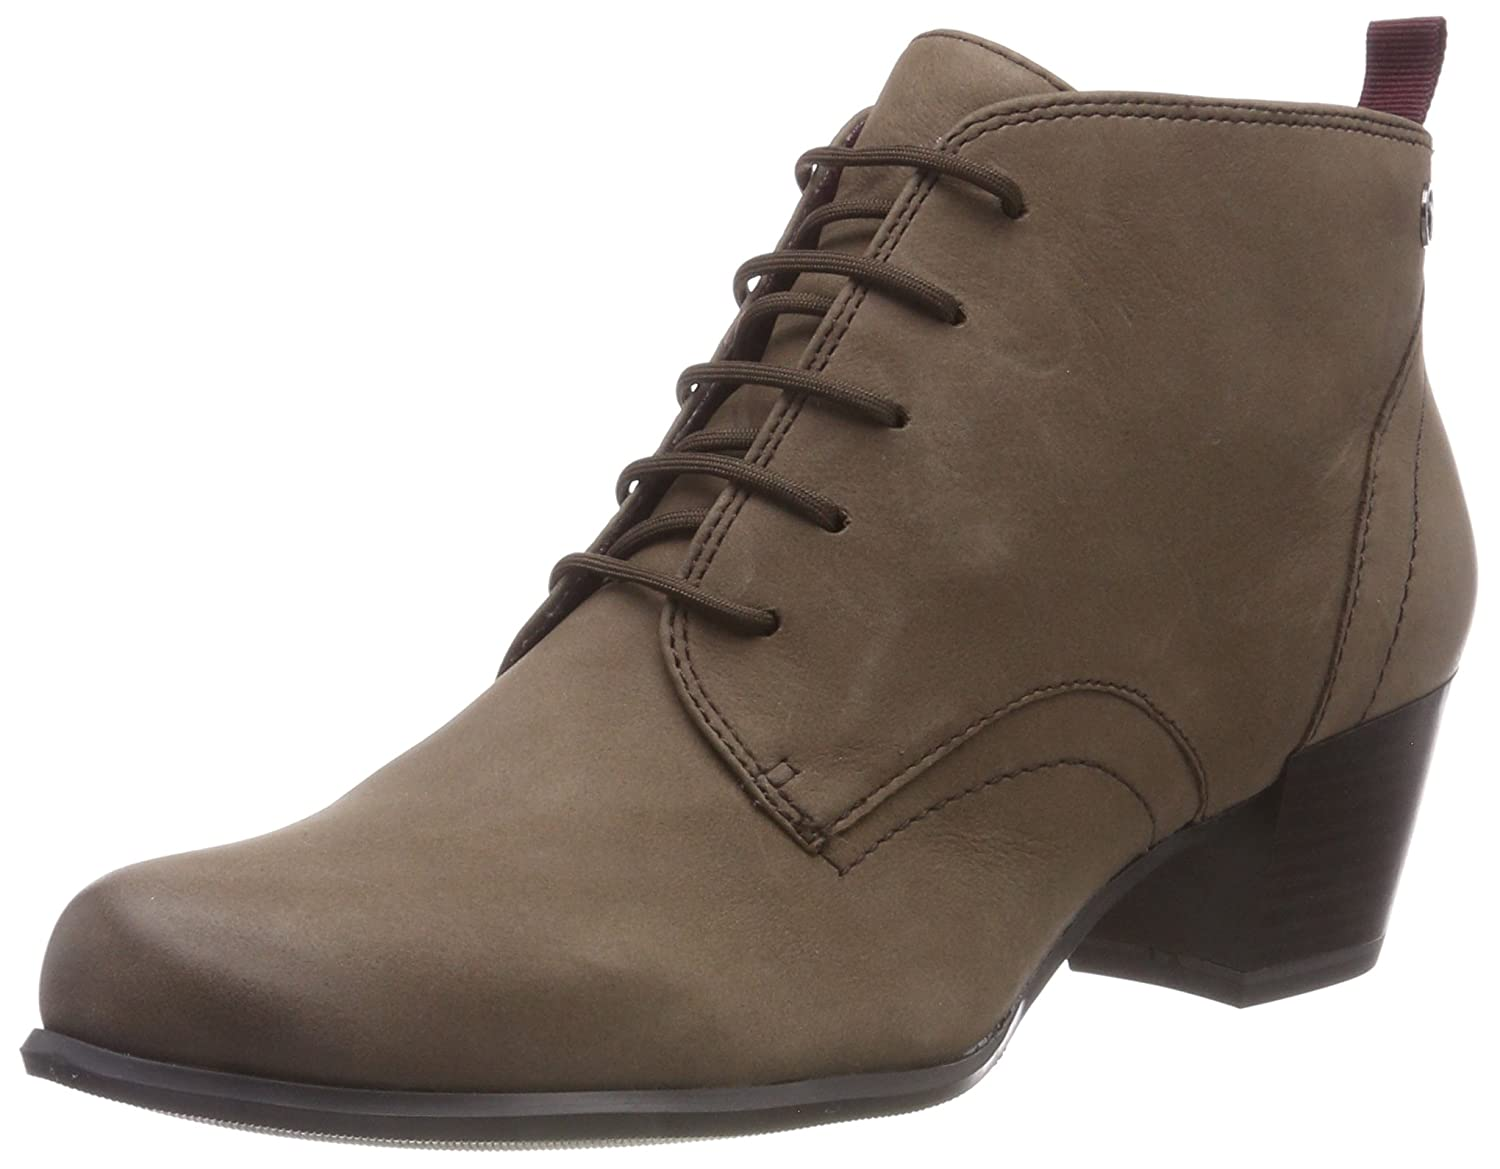 Tamaris 439) Nubuc 25115, Rangers Boots Femme Marron (Cigar Marron Nubuc 439) 5affac3 - latesttechnology.space